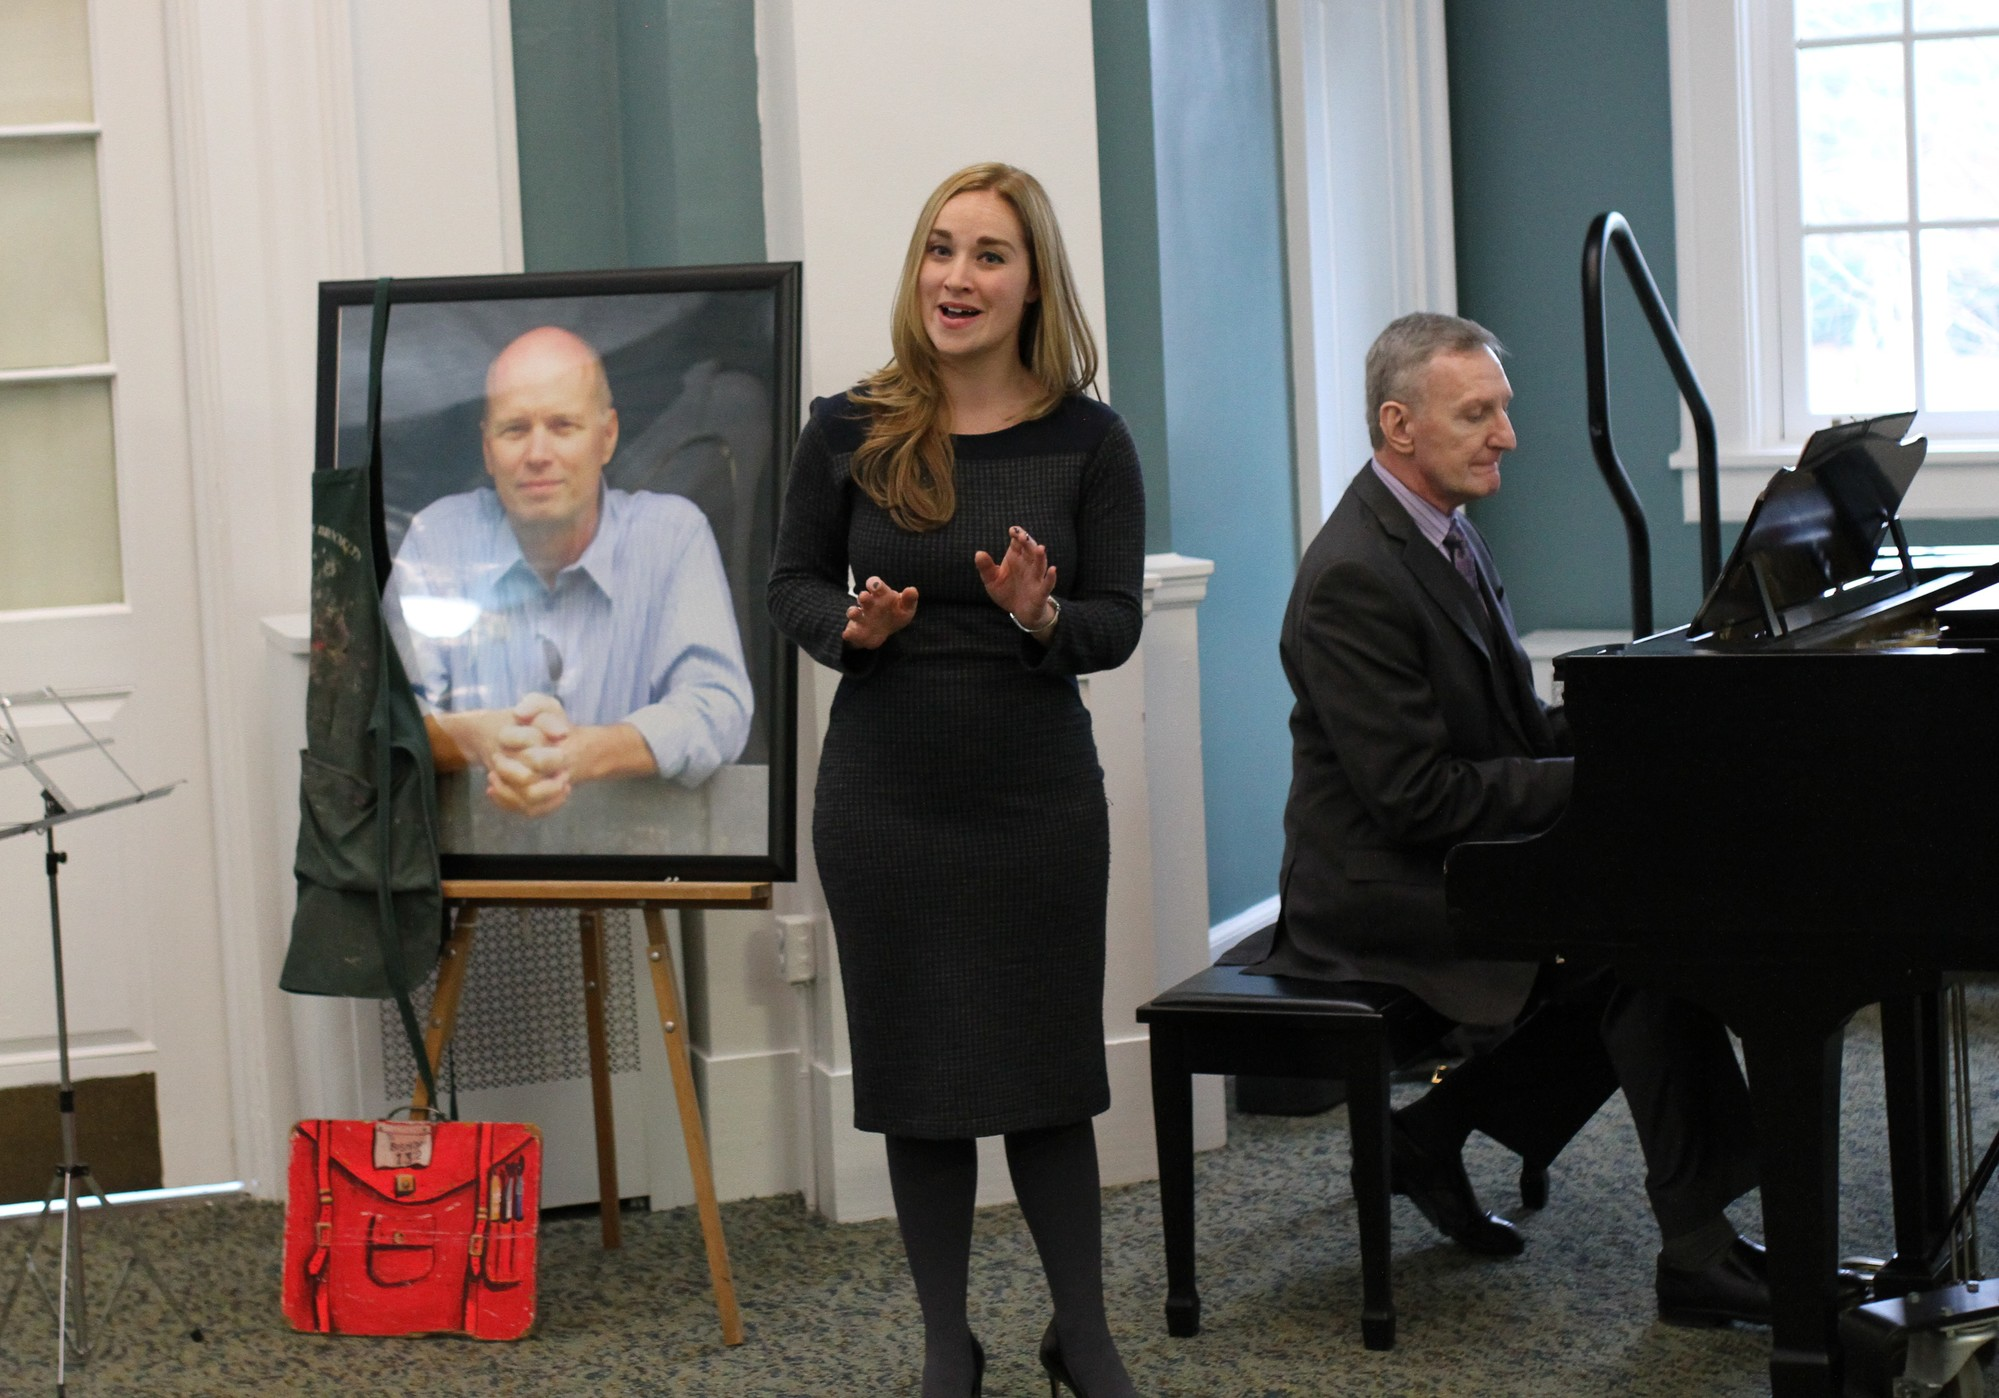 "Jaime Hastings, an East Rockaway High School alumnus class of 202, who knew Bishop best through working with him in the school musicals, performed a song in Bishop's honor, ""If"" (""If a picture paints a thousand words..."") by Bread."